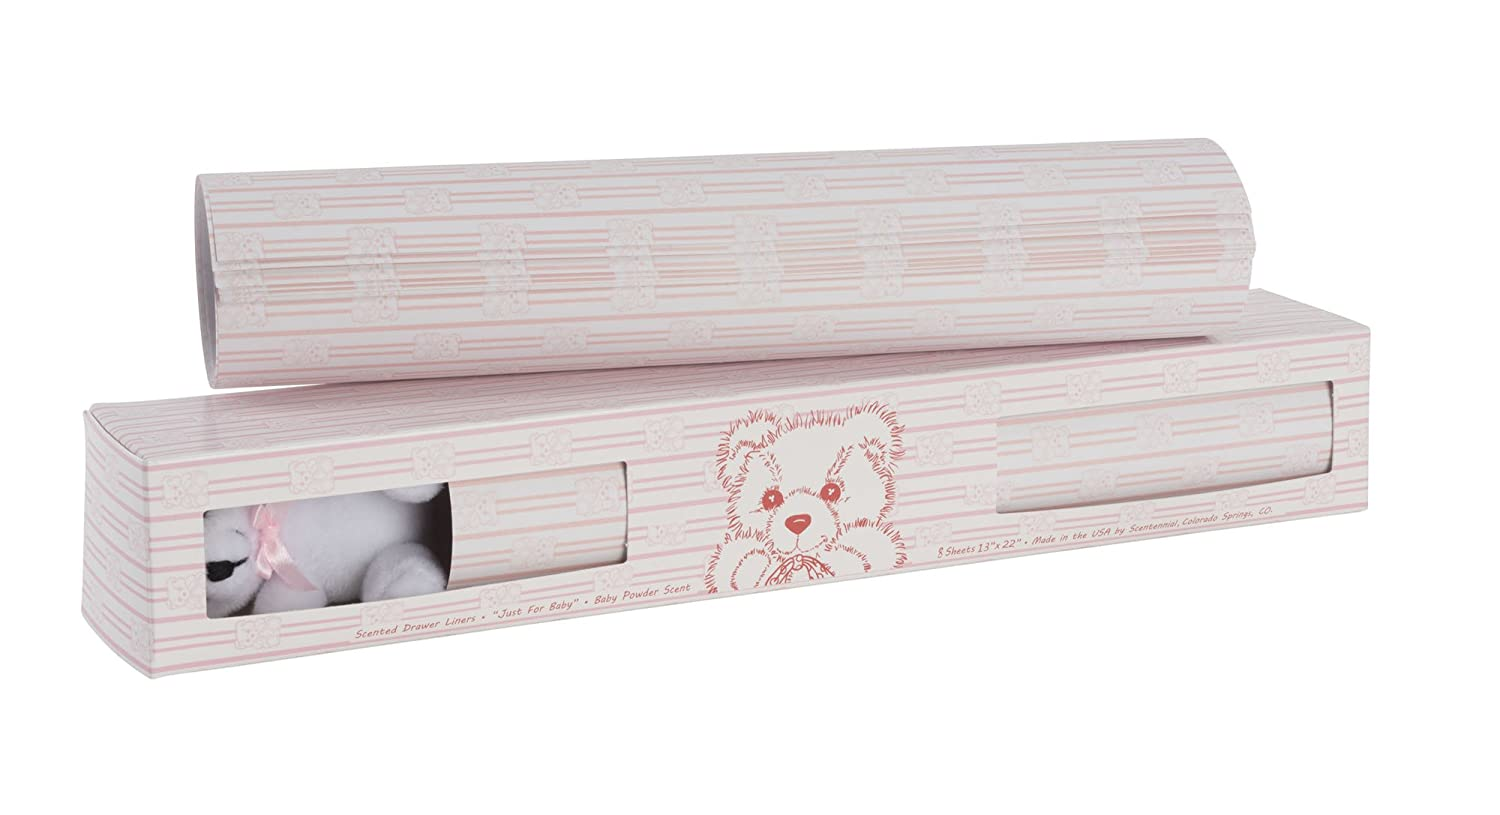 Baby Original Scented Drawer Liner From Scentennials (Pink) Scentennials Products